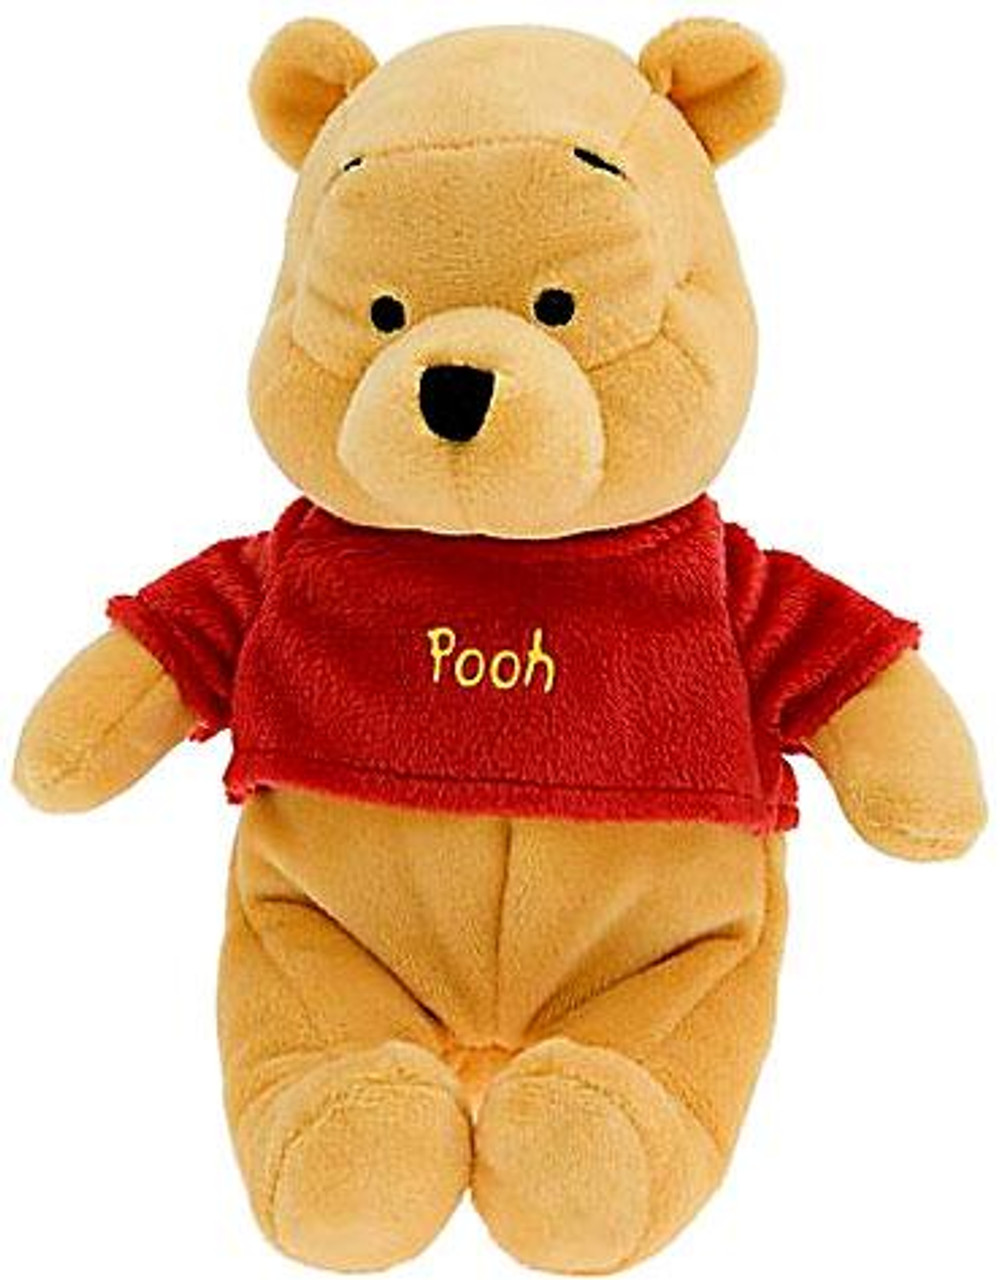 Disney Winnie the Pooh Pooh Exclusive 8-Inch Plush